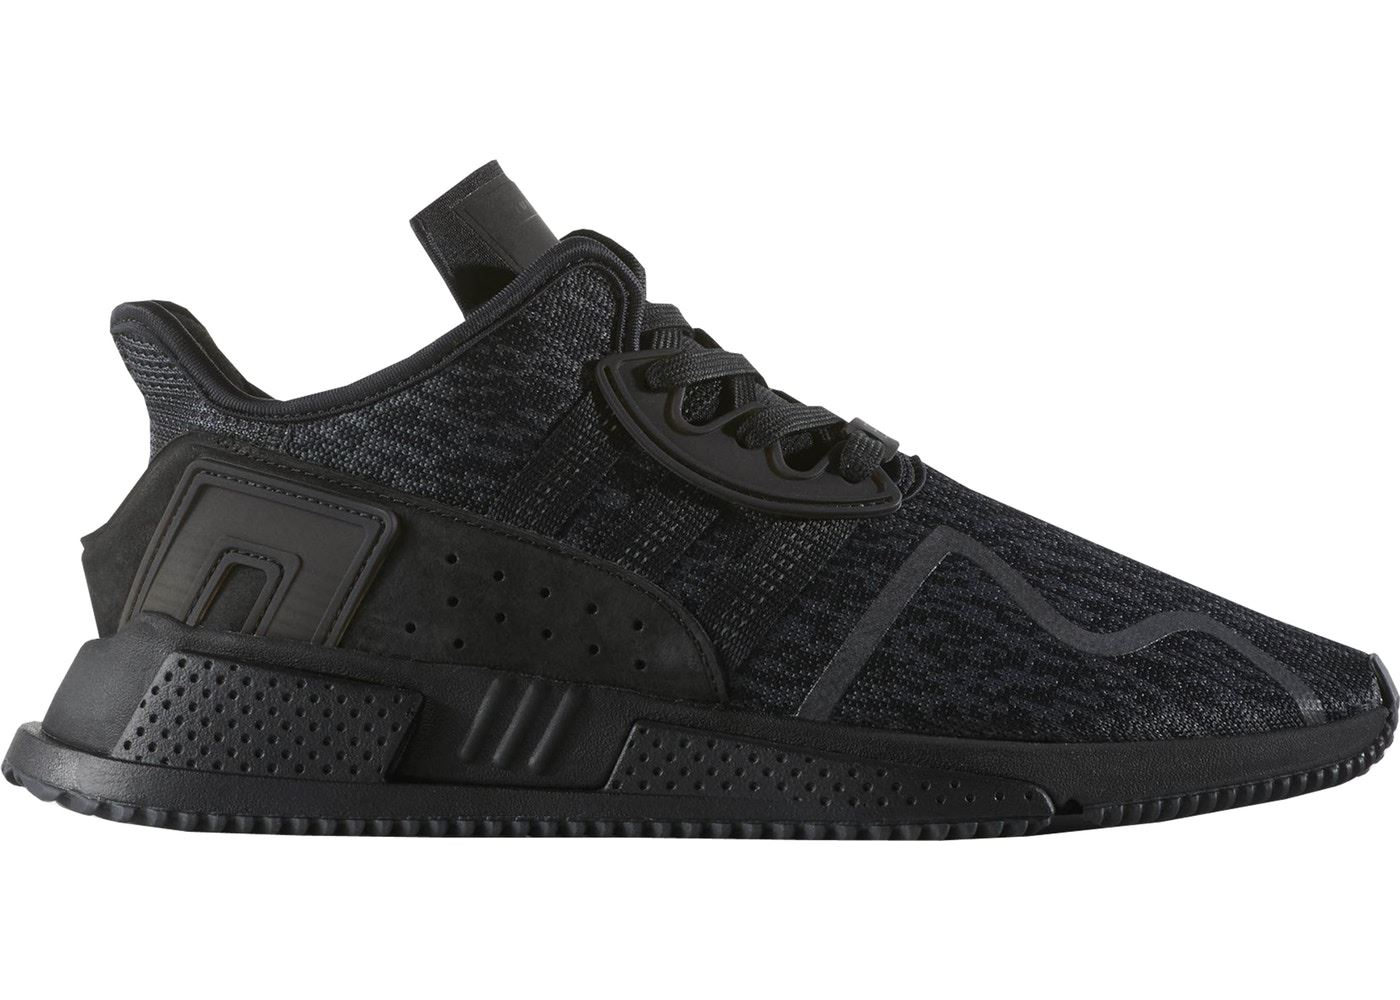 Adidas EQT Cushion ADV  6 BY9507   Herren TrainersOriginalsUK 6  to 12 Only 230cd4